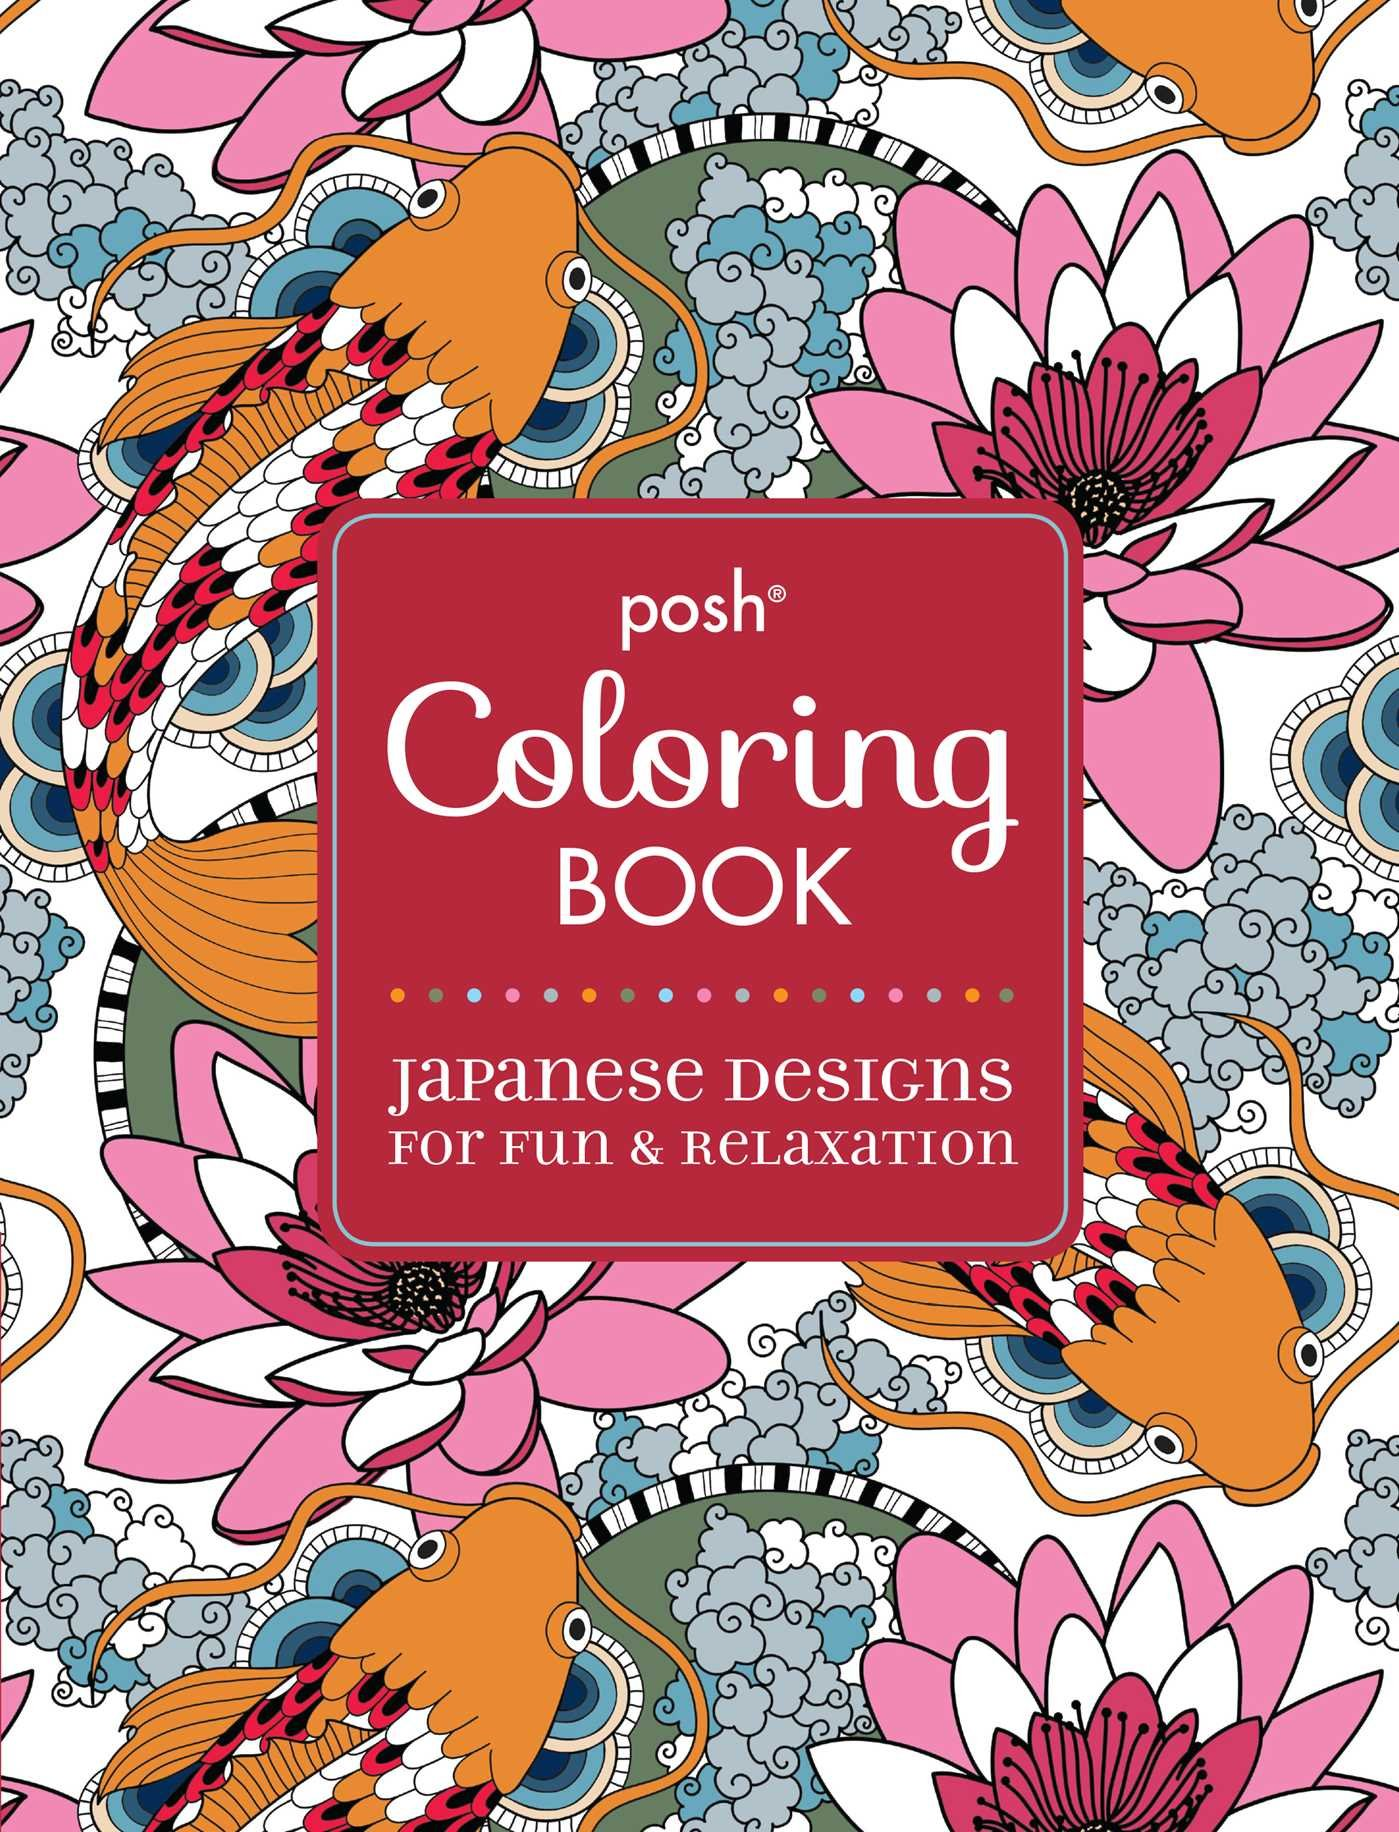 Posh adult coloring book japanese designs for fun relaxation posh coloring books paperback july 7 2015